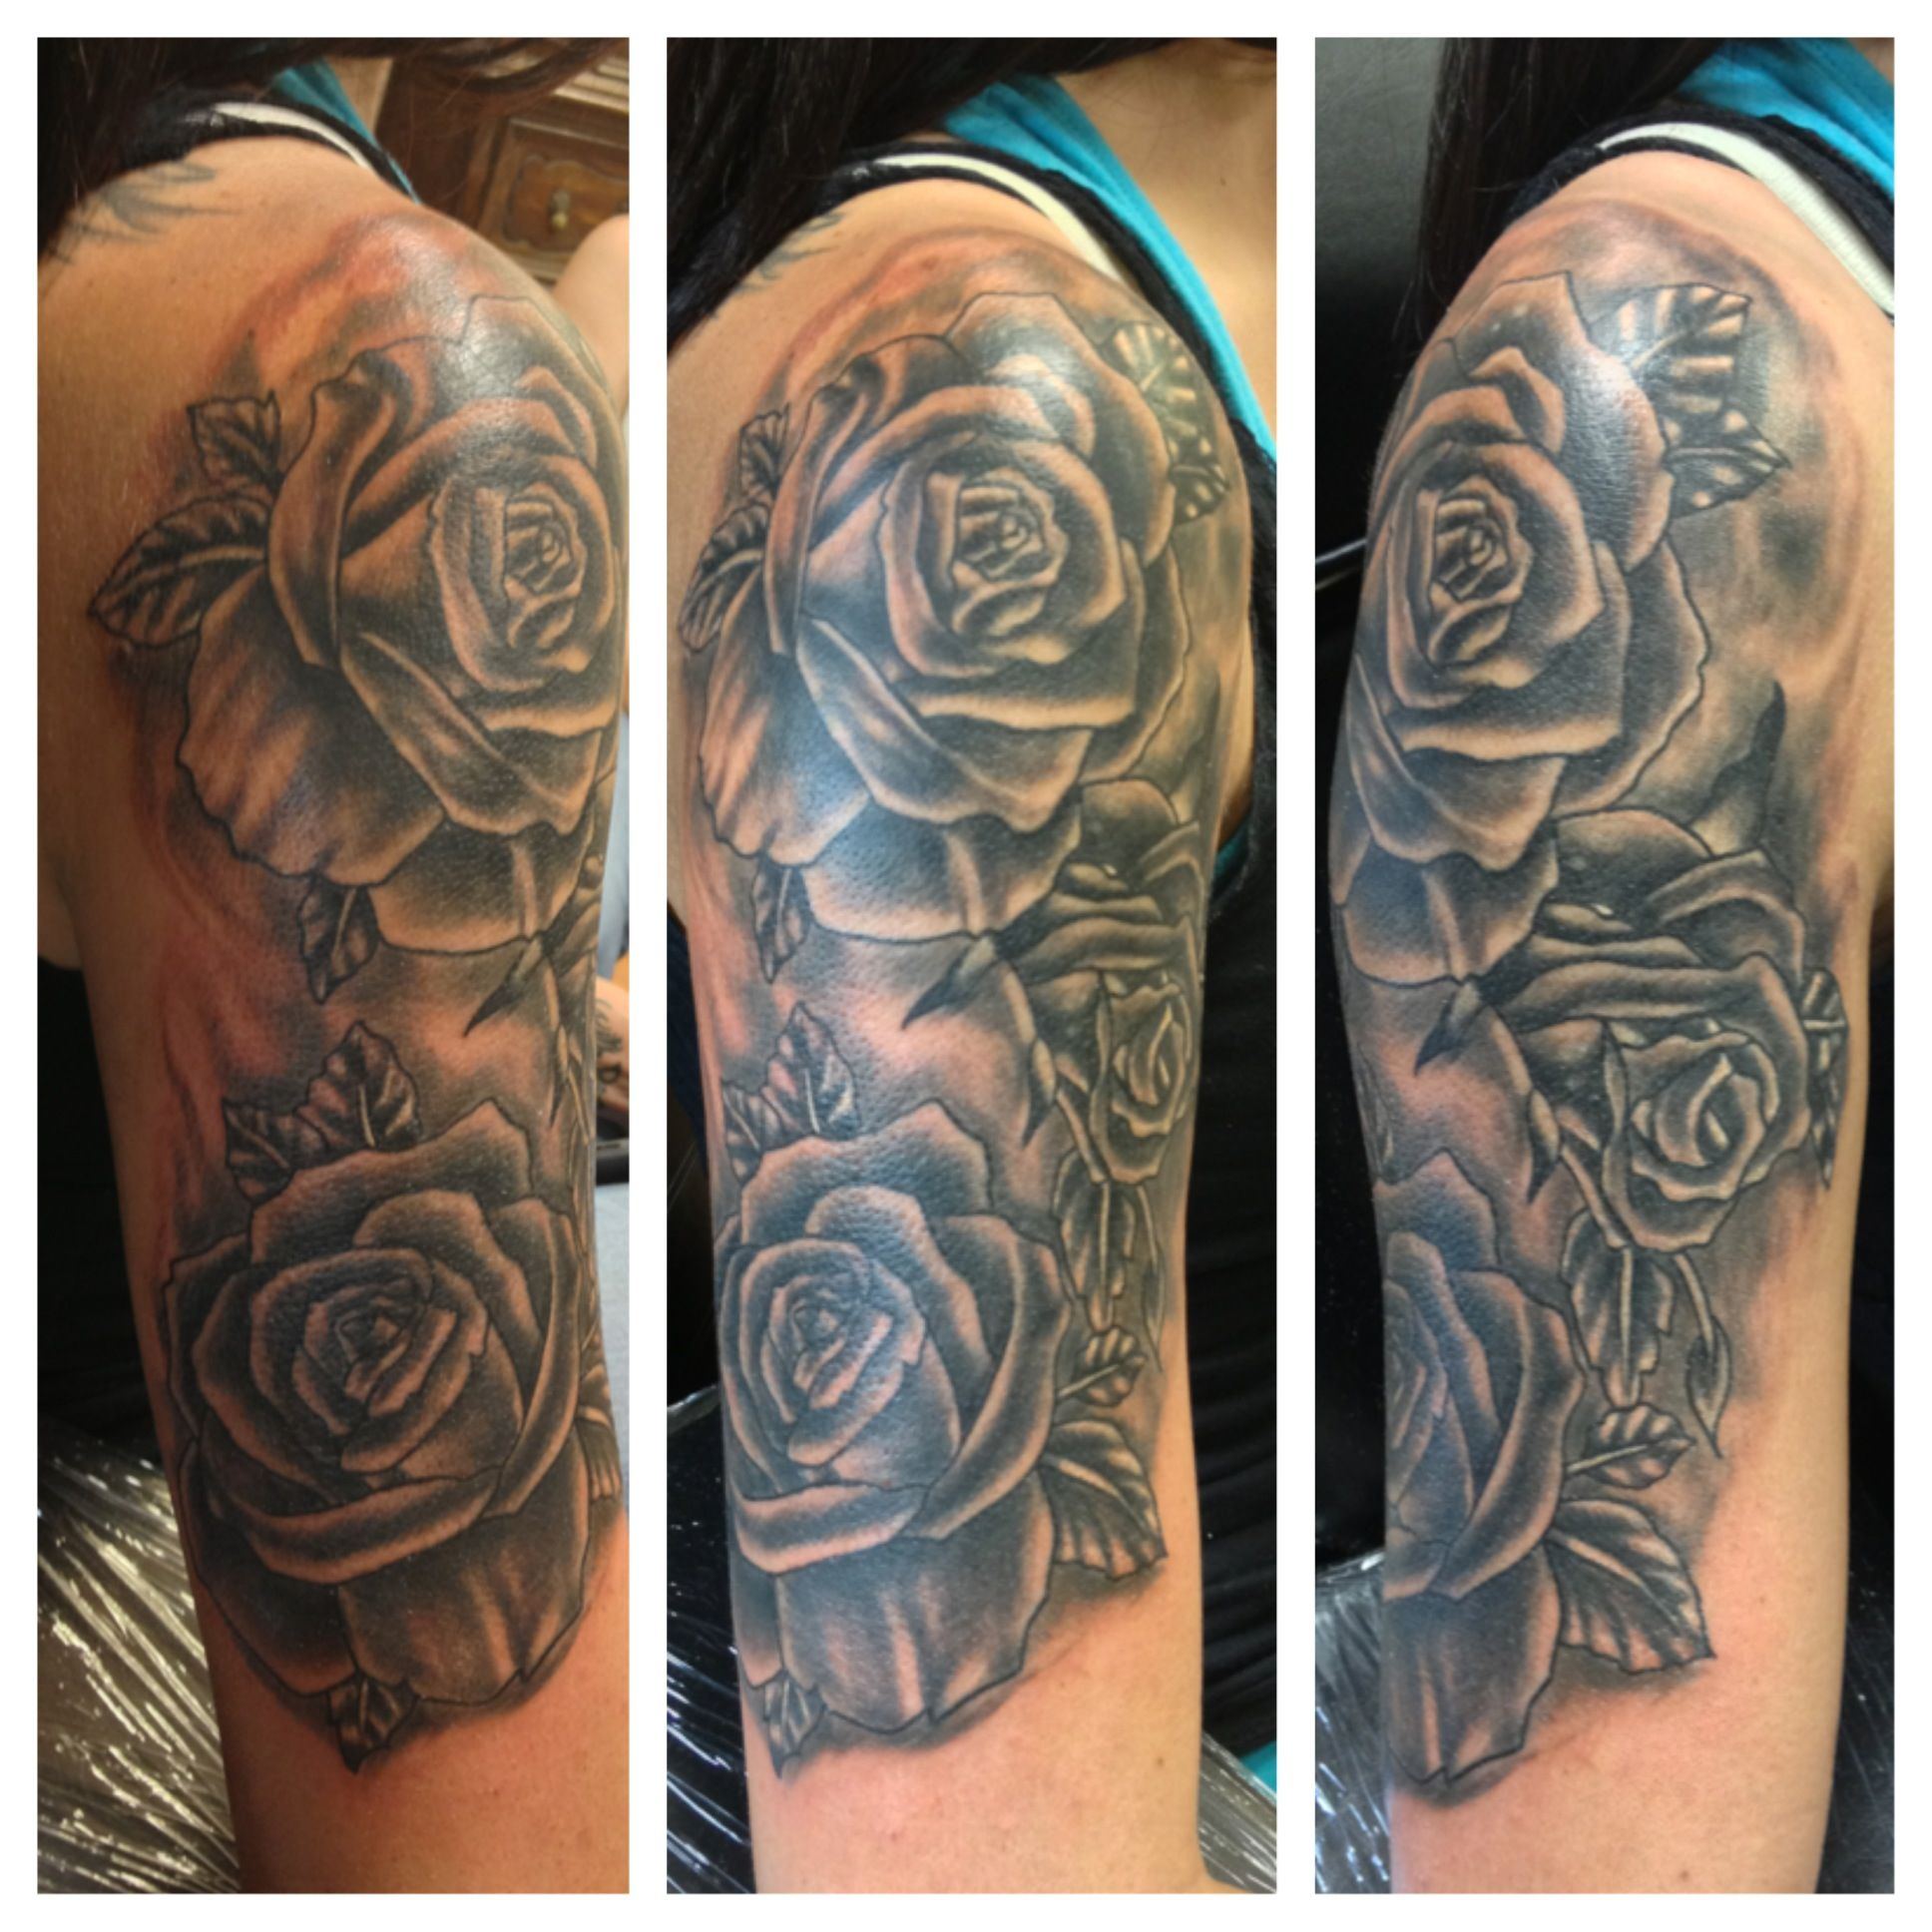 Tattoo Leg Man Rose Flower Black And White: Black And White Rose Half Sleeve Done By Bob Price At